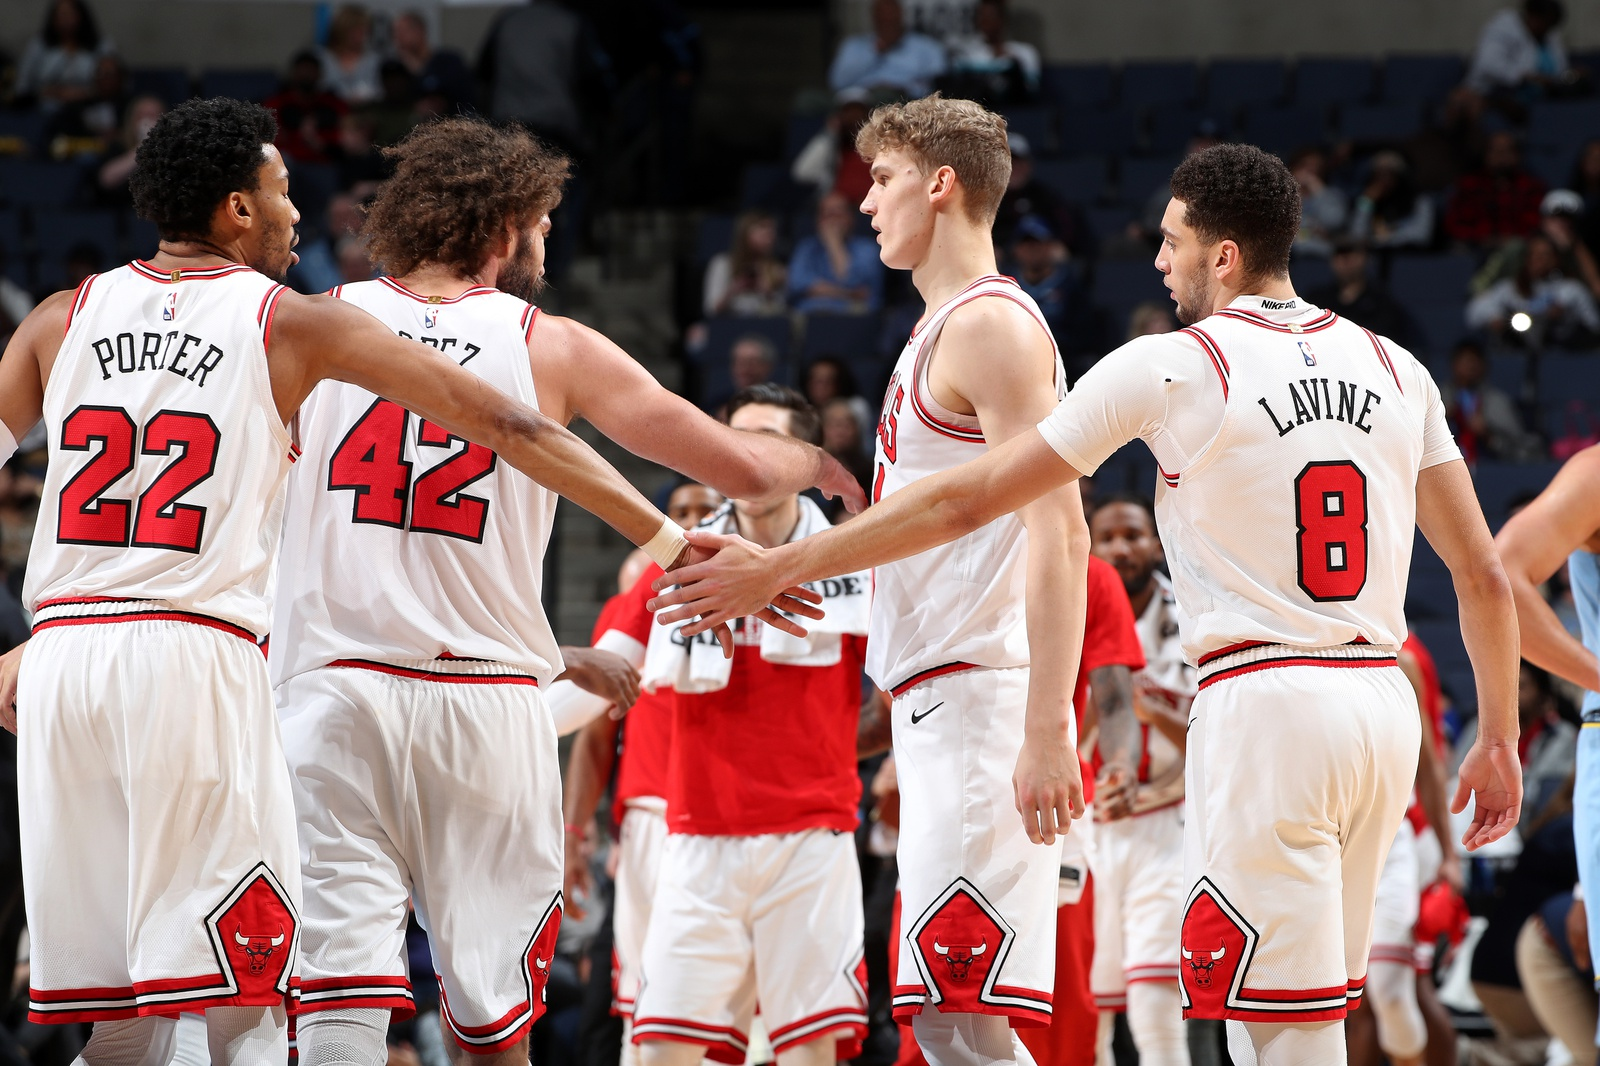 Otto Porter Jr. #22 and Zach LaVine #8 of the Chicago Bulls high five during the game against the Memphis Grizzlies on February 27, 2019 at FedExForum in Memphis, Tennessee.